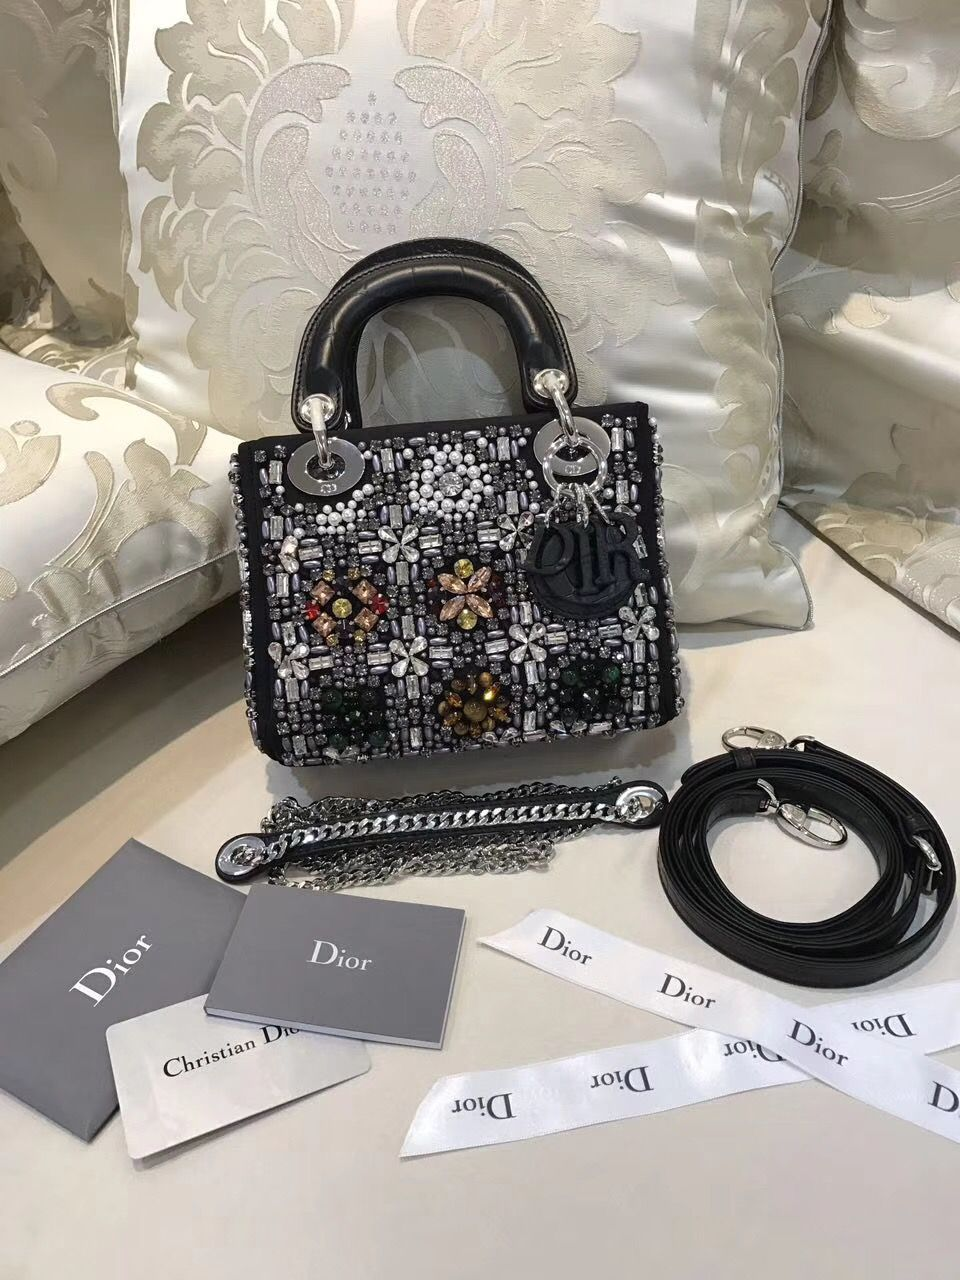 Dior Mini Lady Dior Bag Embroidered with Jewelry 2018  6cd1901f3dc25